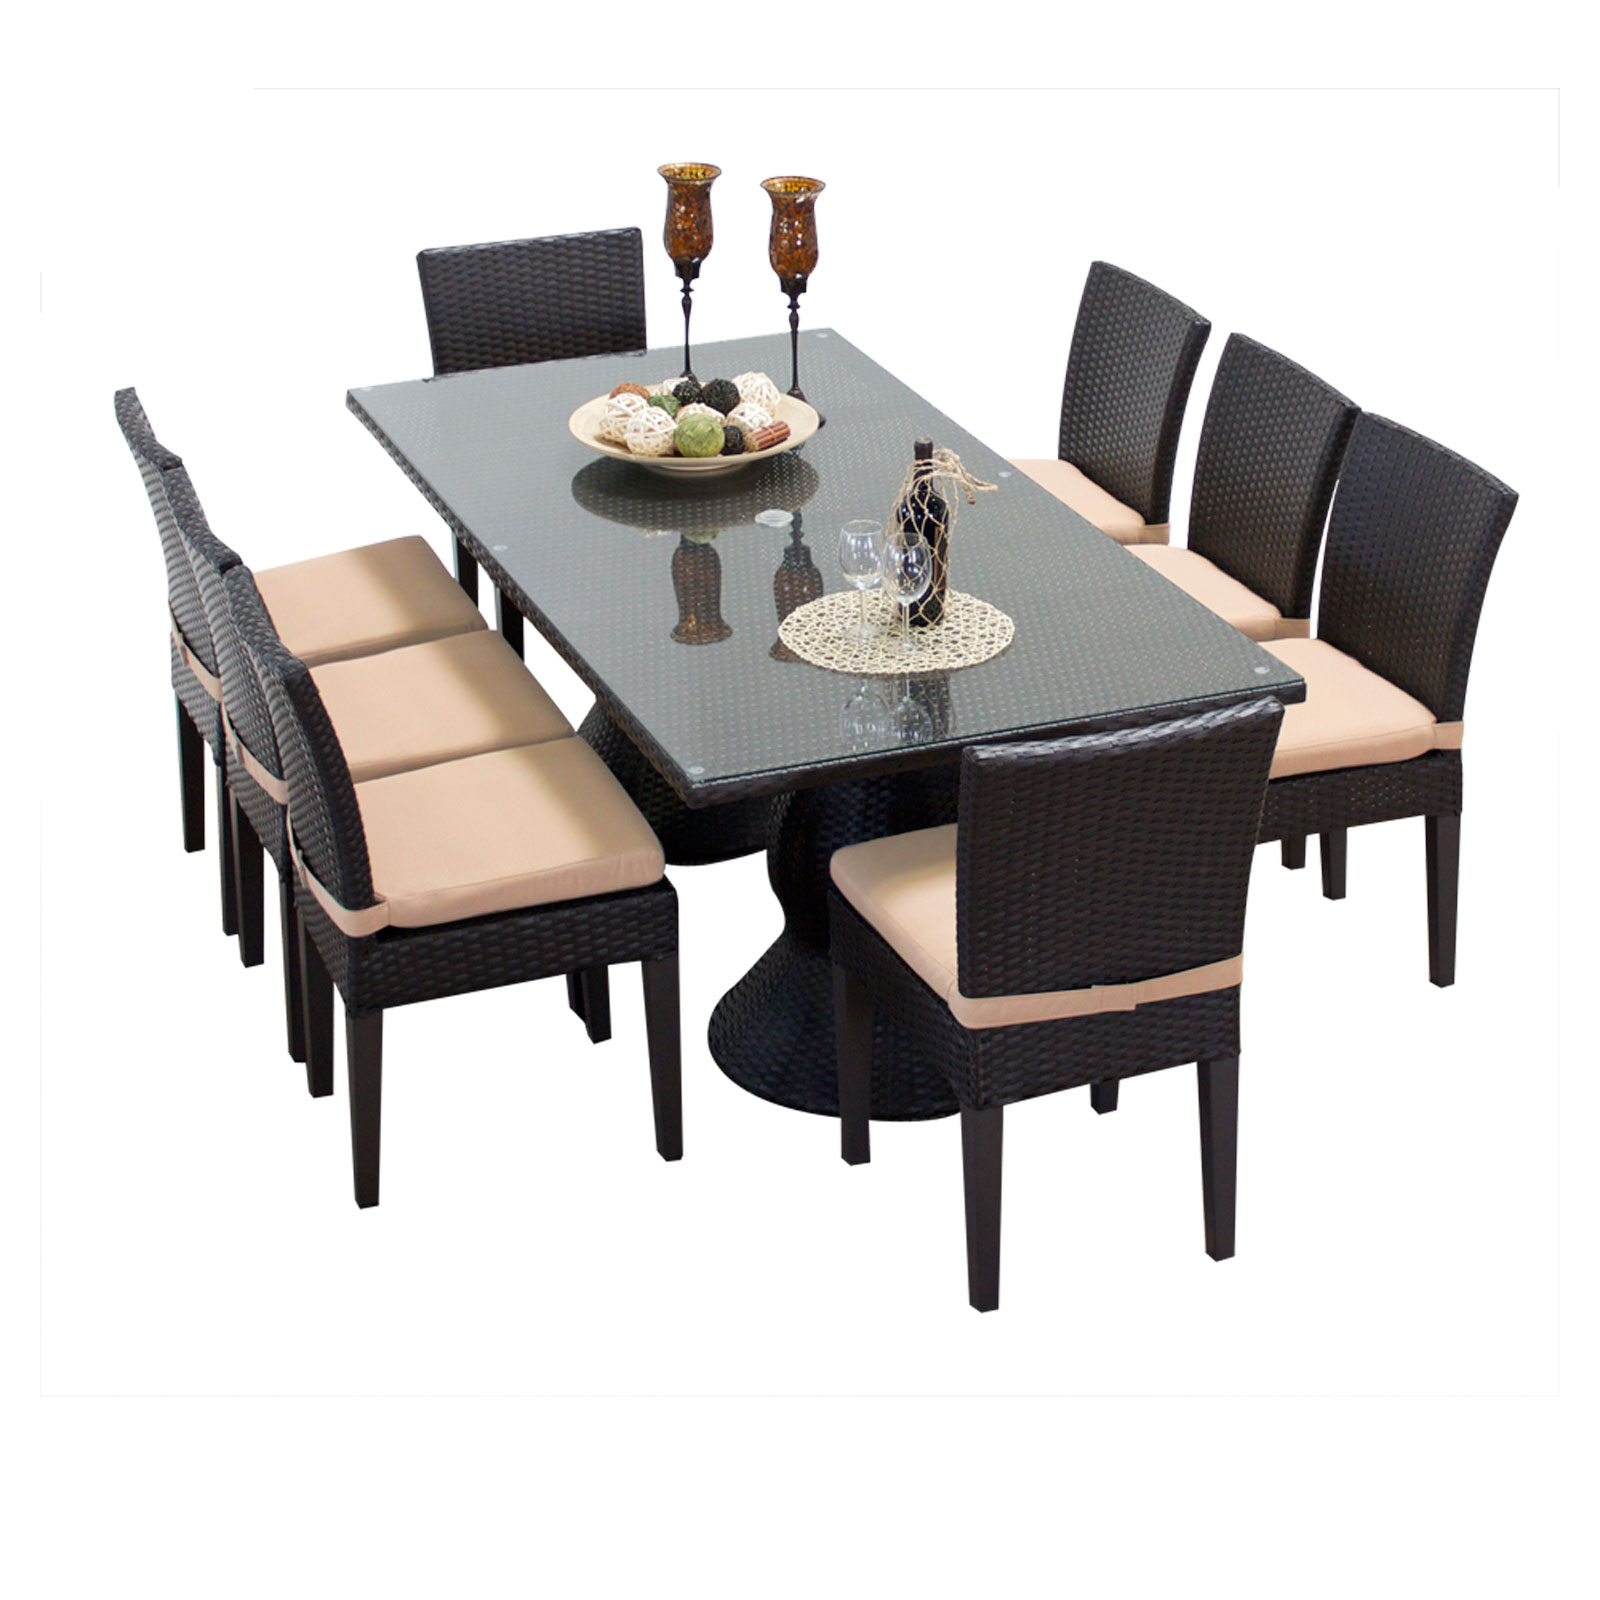 Dining Table 8 Chairs Saturn Rectangular Outdoor Patio Dining Table With 8 Chairs